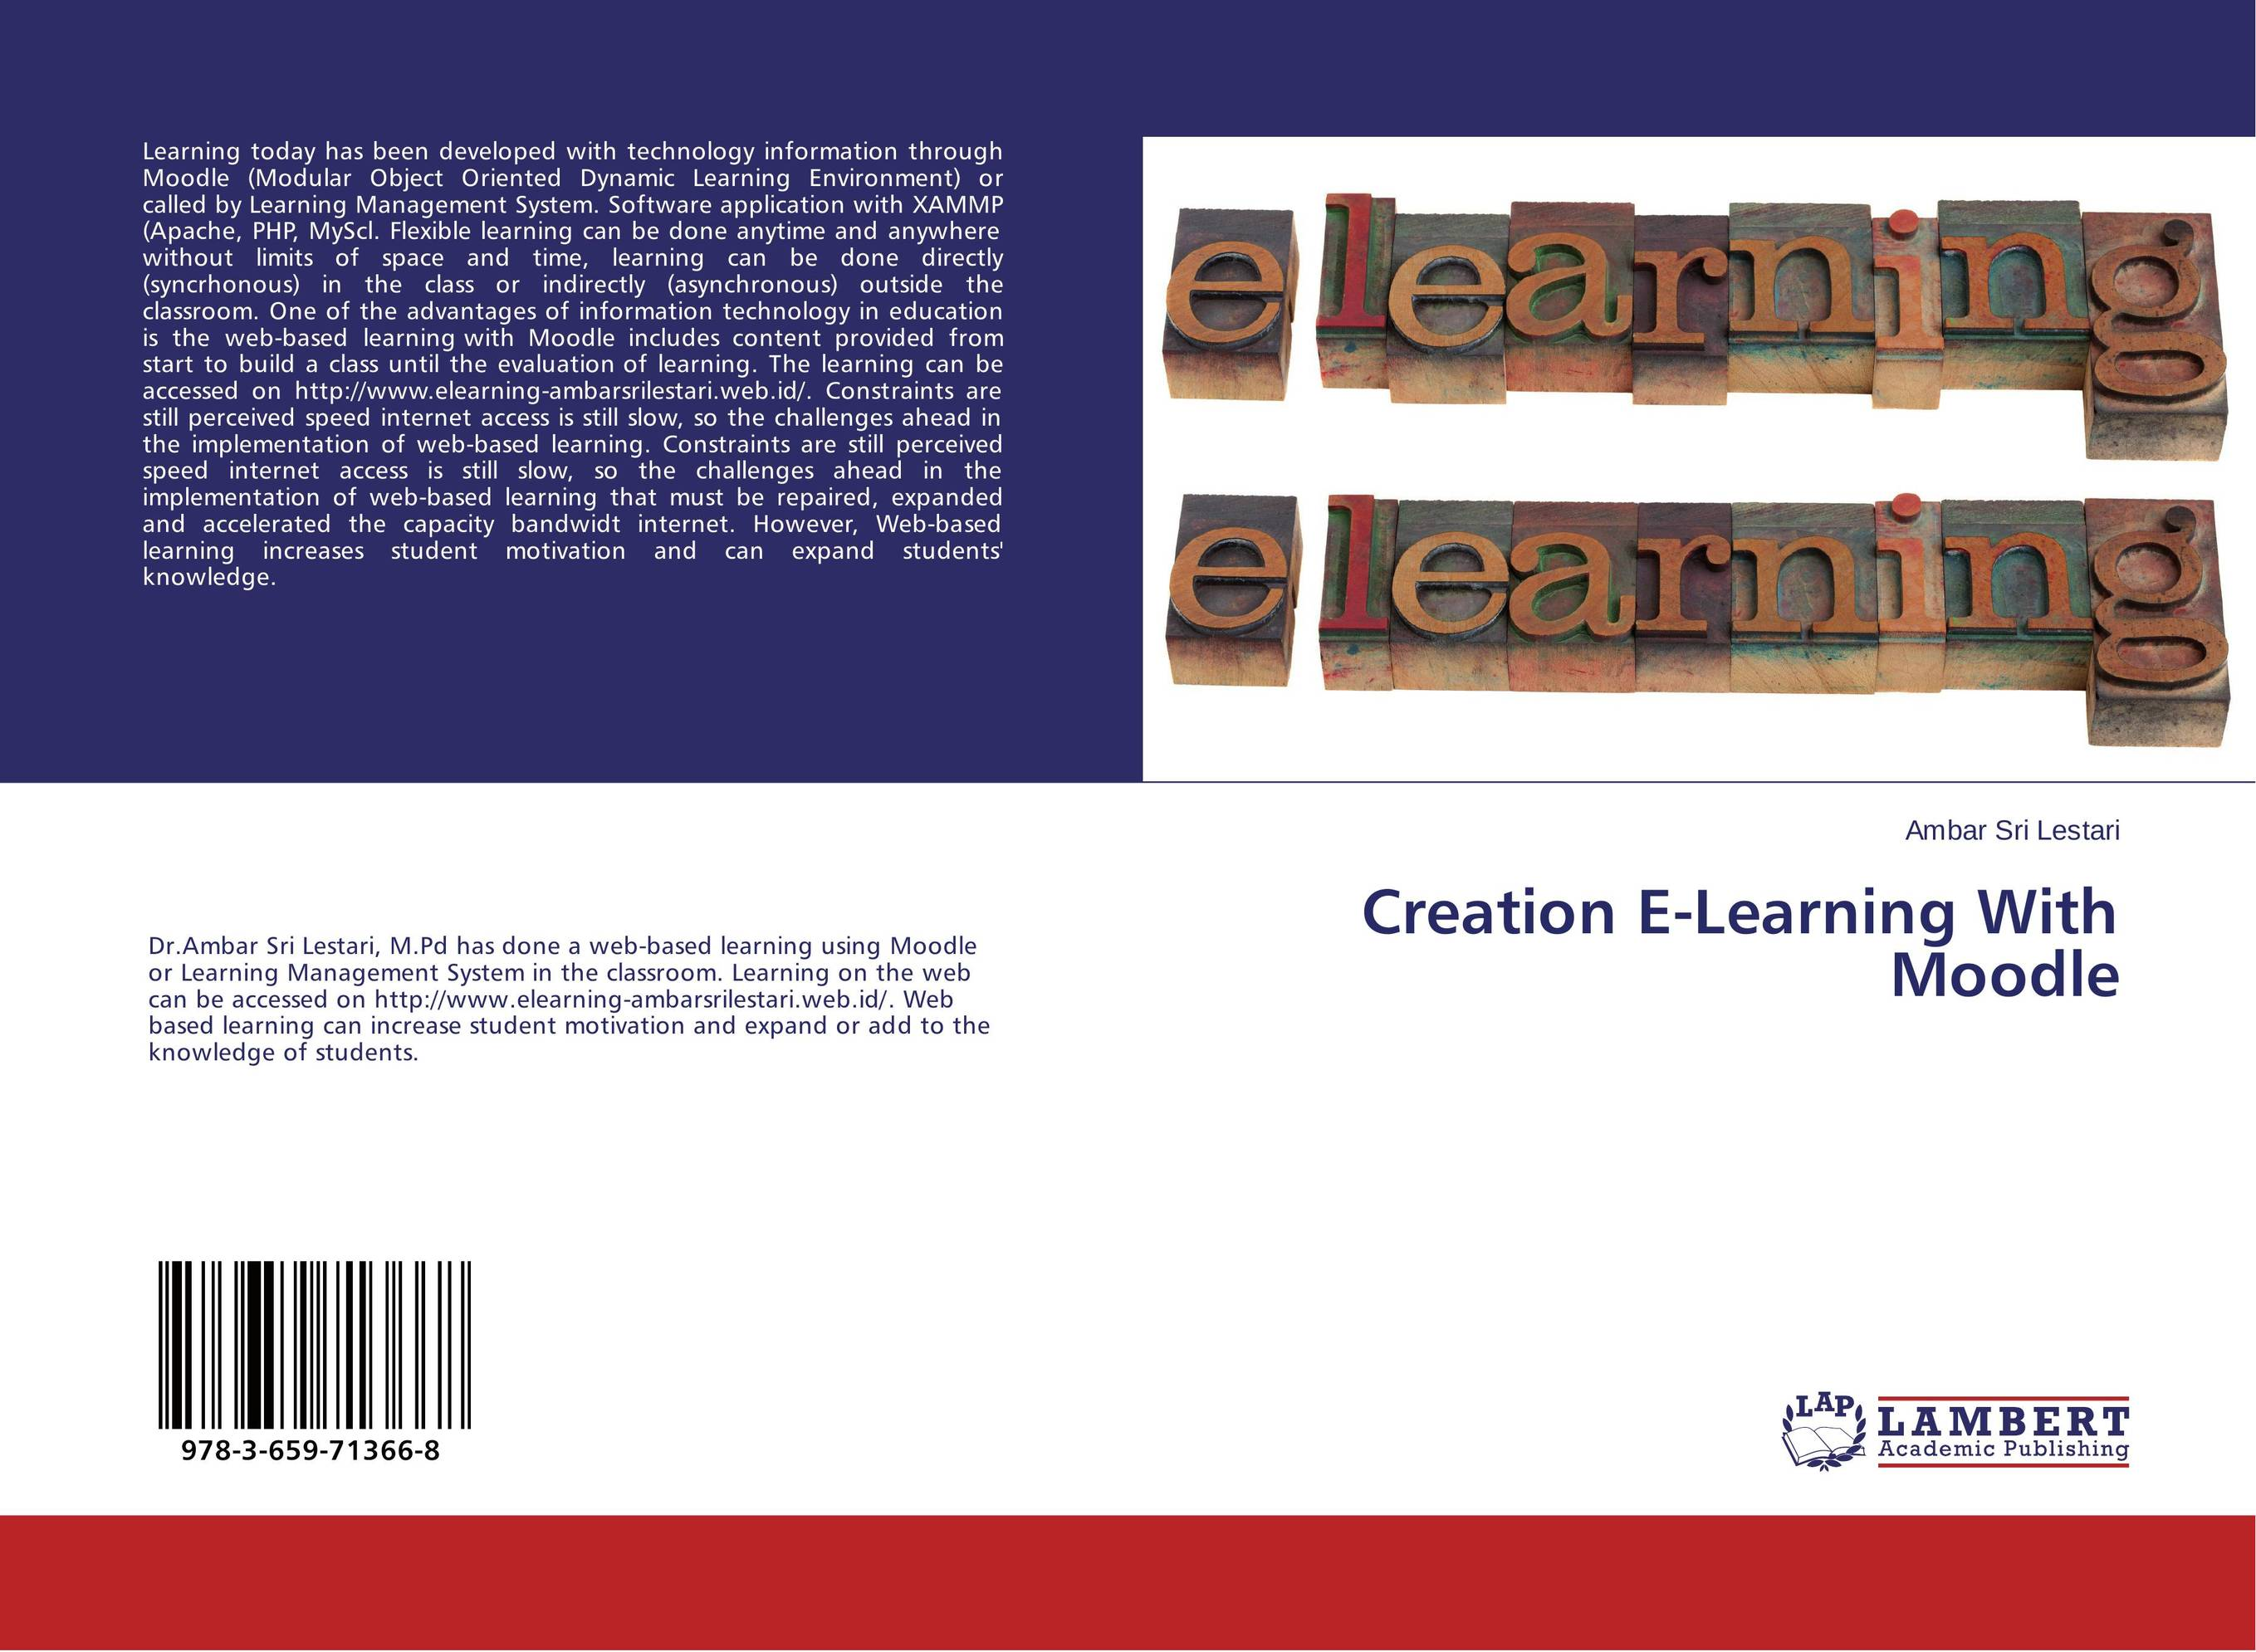 Creation E-Learning With Moodle pso based evolutionary learning